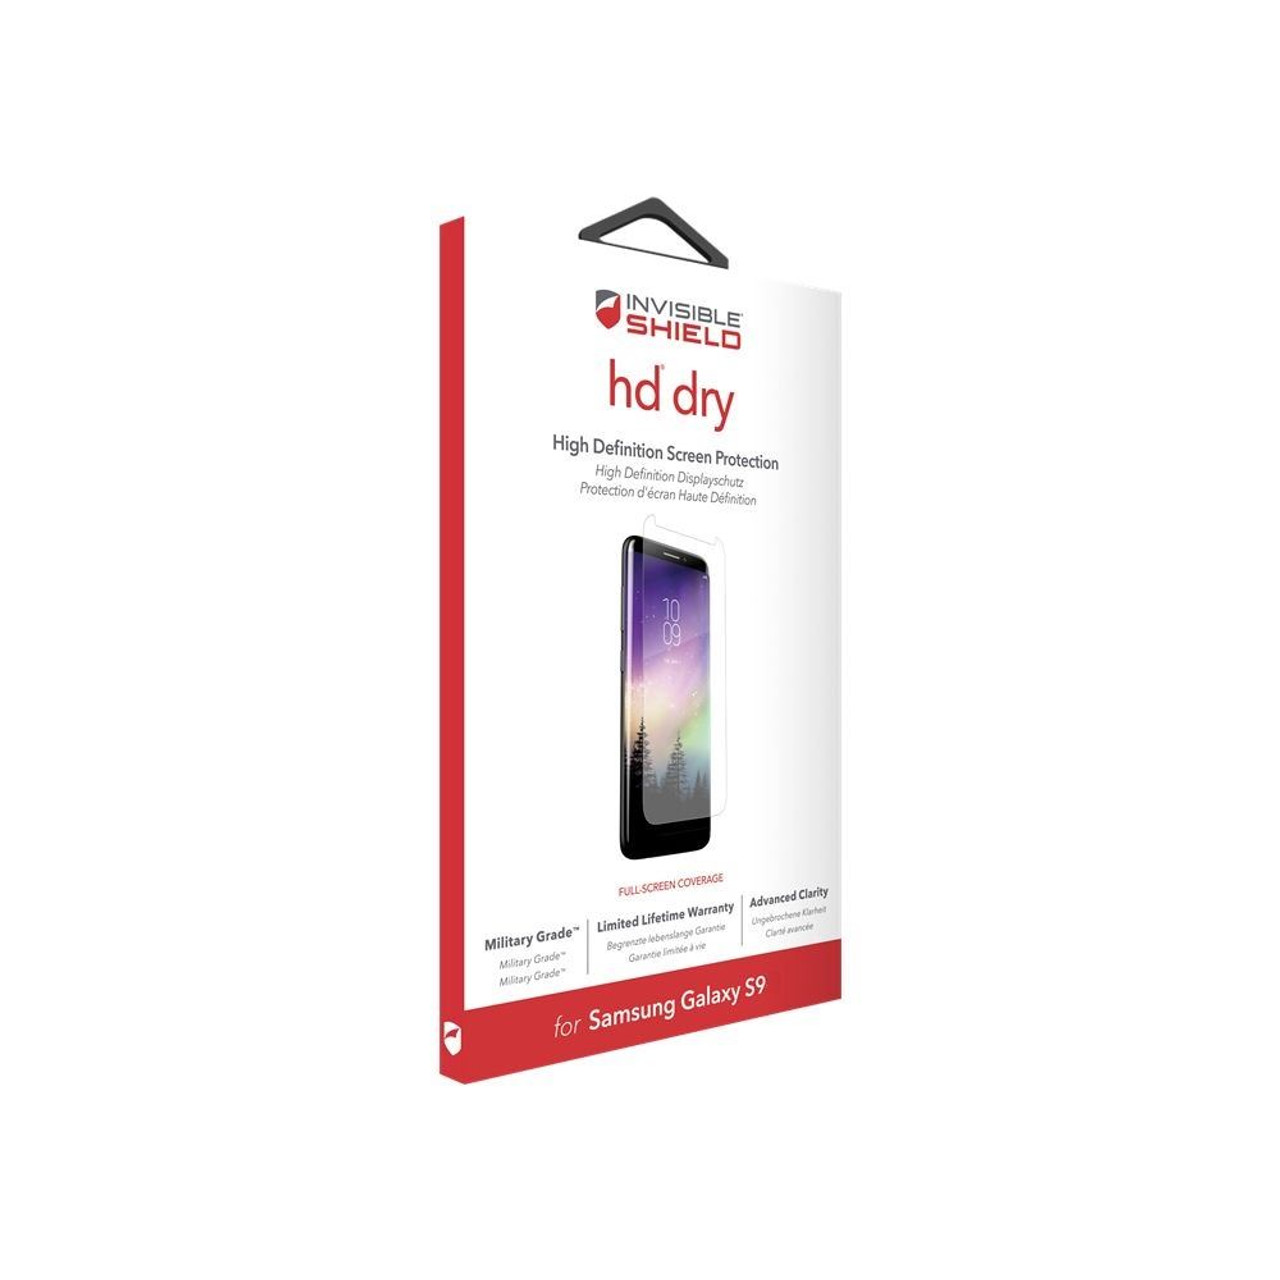 Zagg Invisibleshield Hd Dry Clear Screen Protector Guard For Samsung Galaxy S9